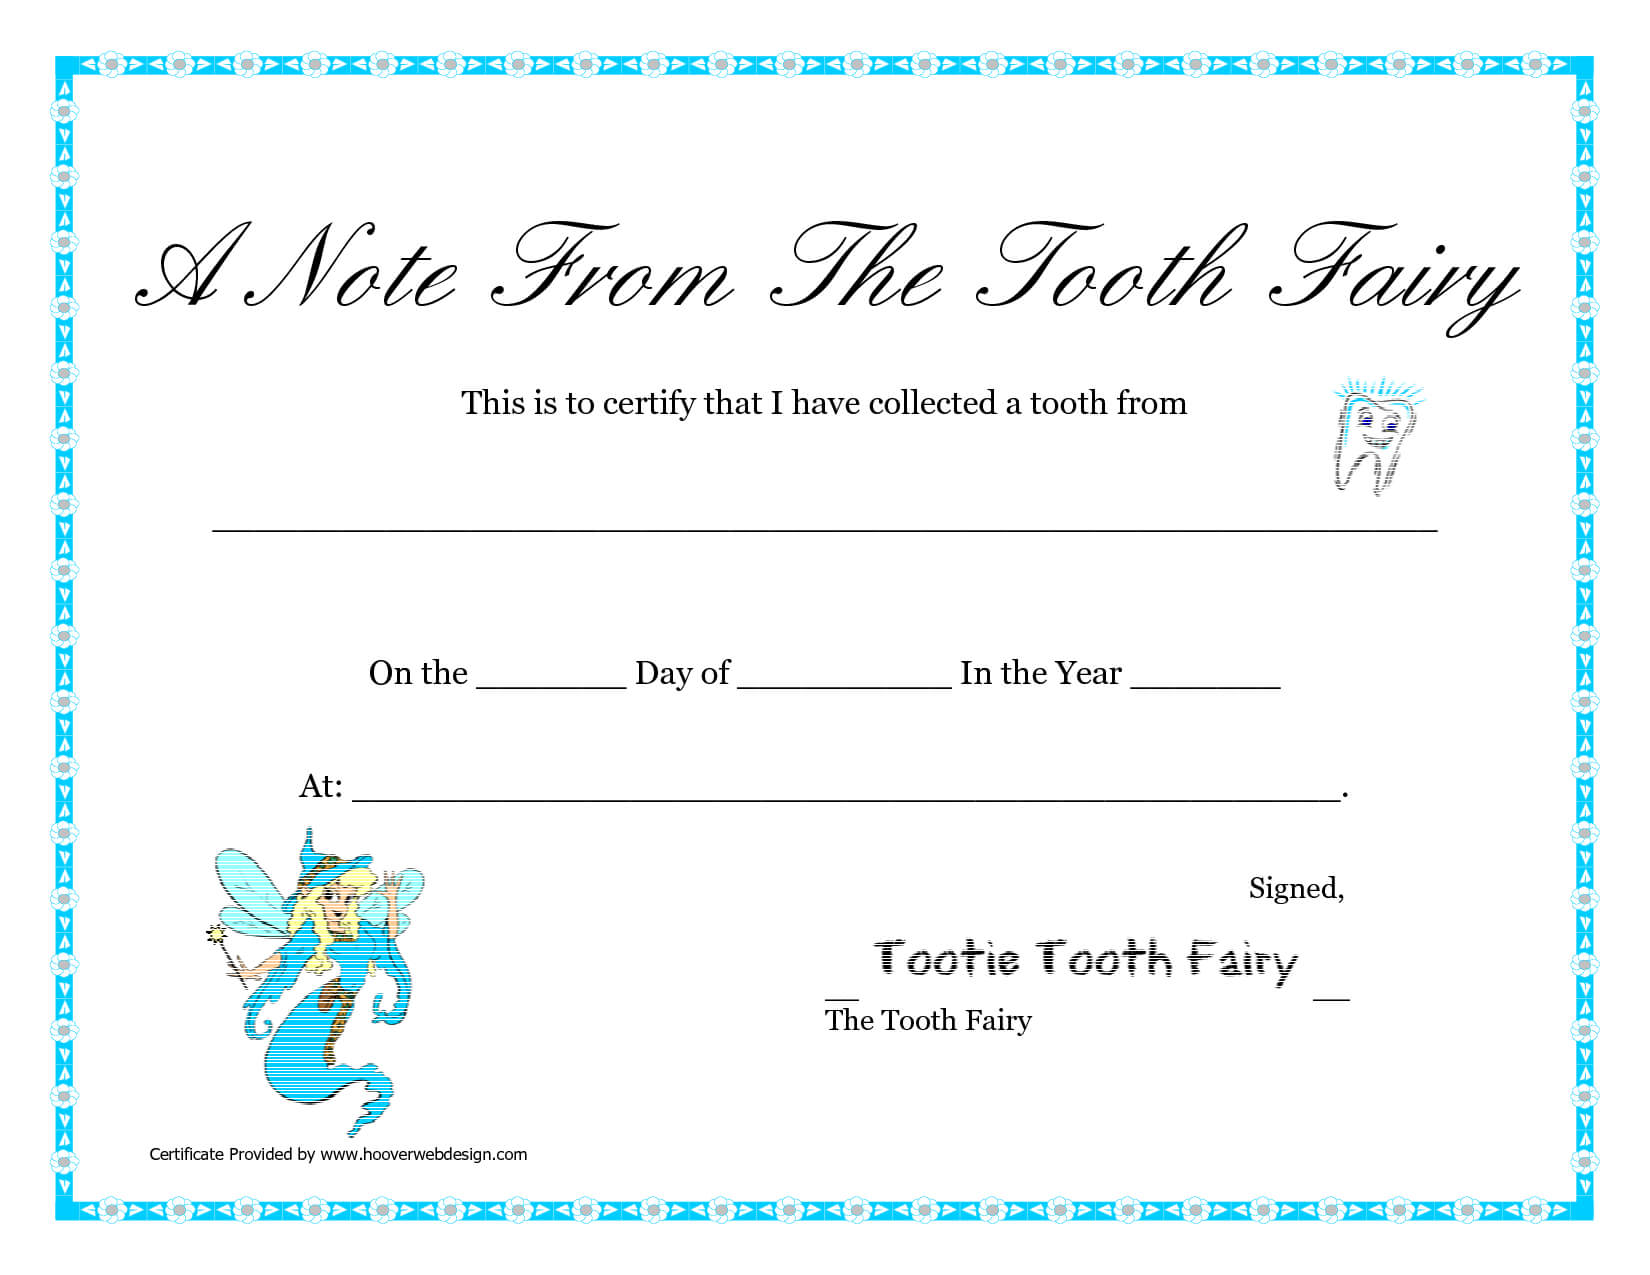 Free Printable Tooth Fairy Letter | Tooth Fairy Certificate Within Free Tooth Fairy Certificate Template